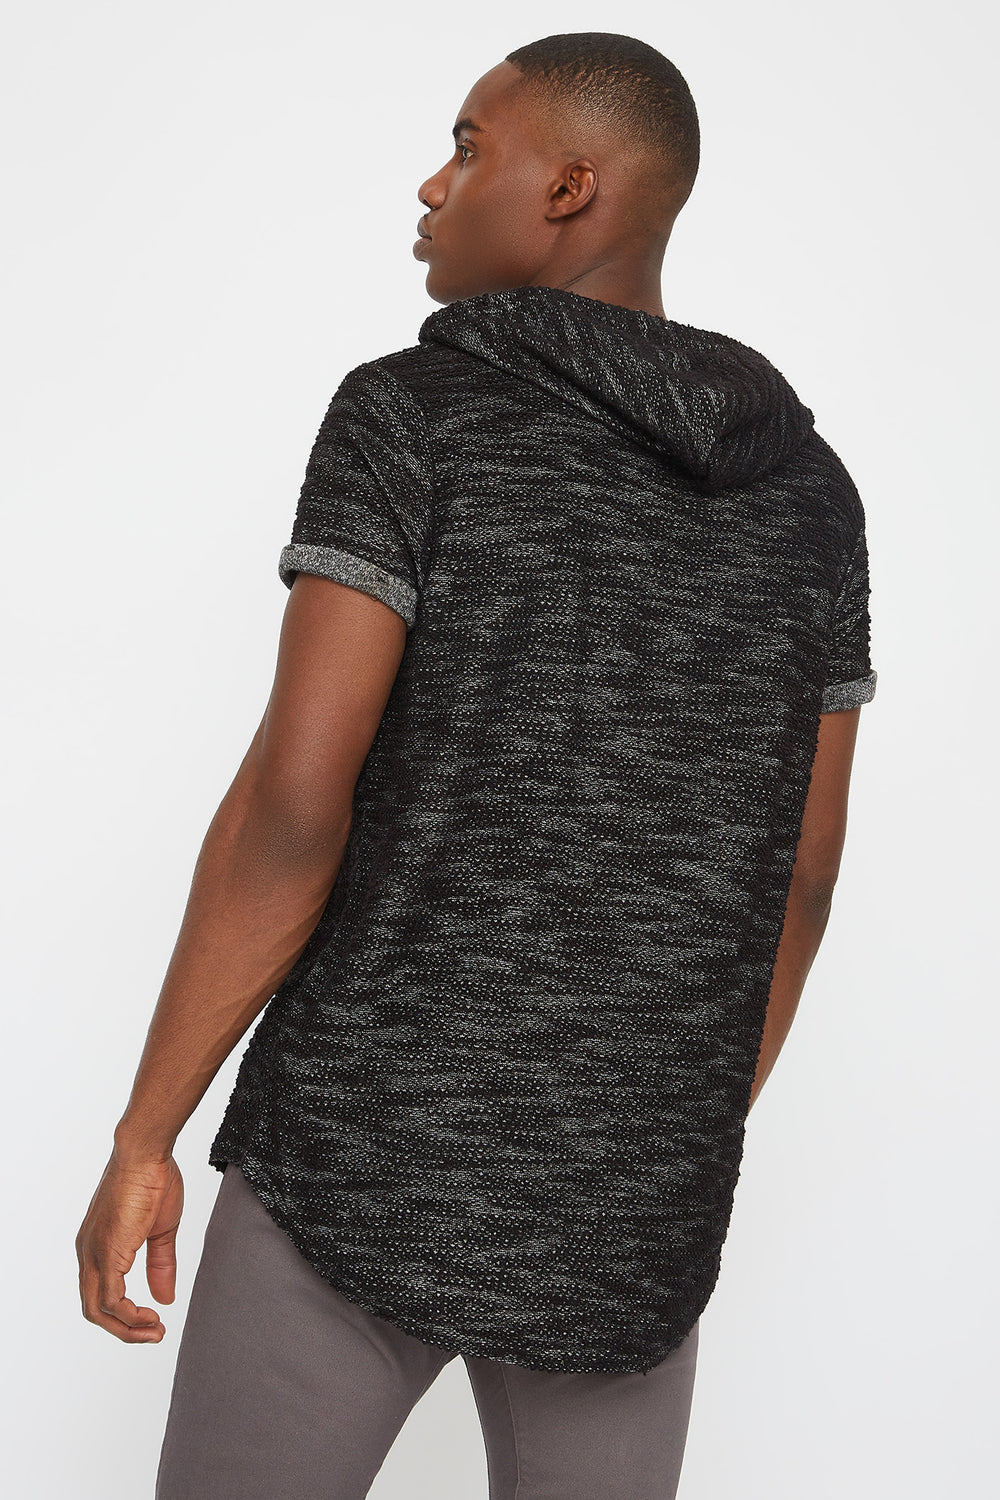 Textured Hooded T-Shirt Black